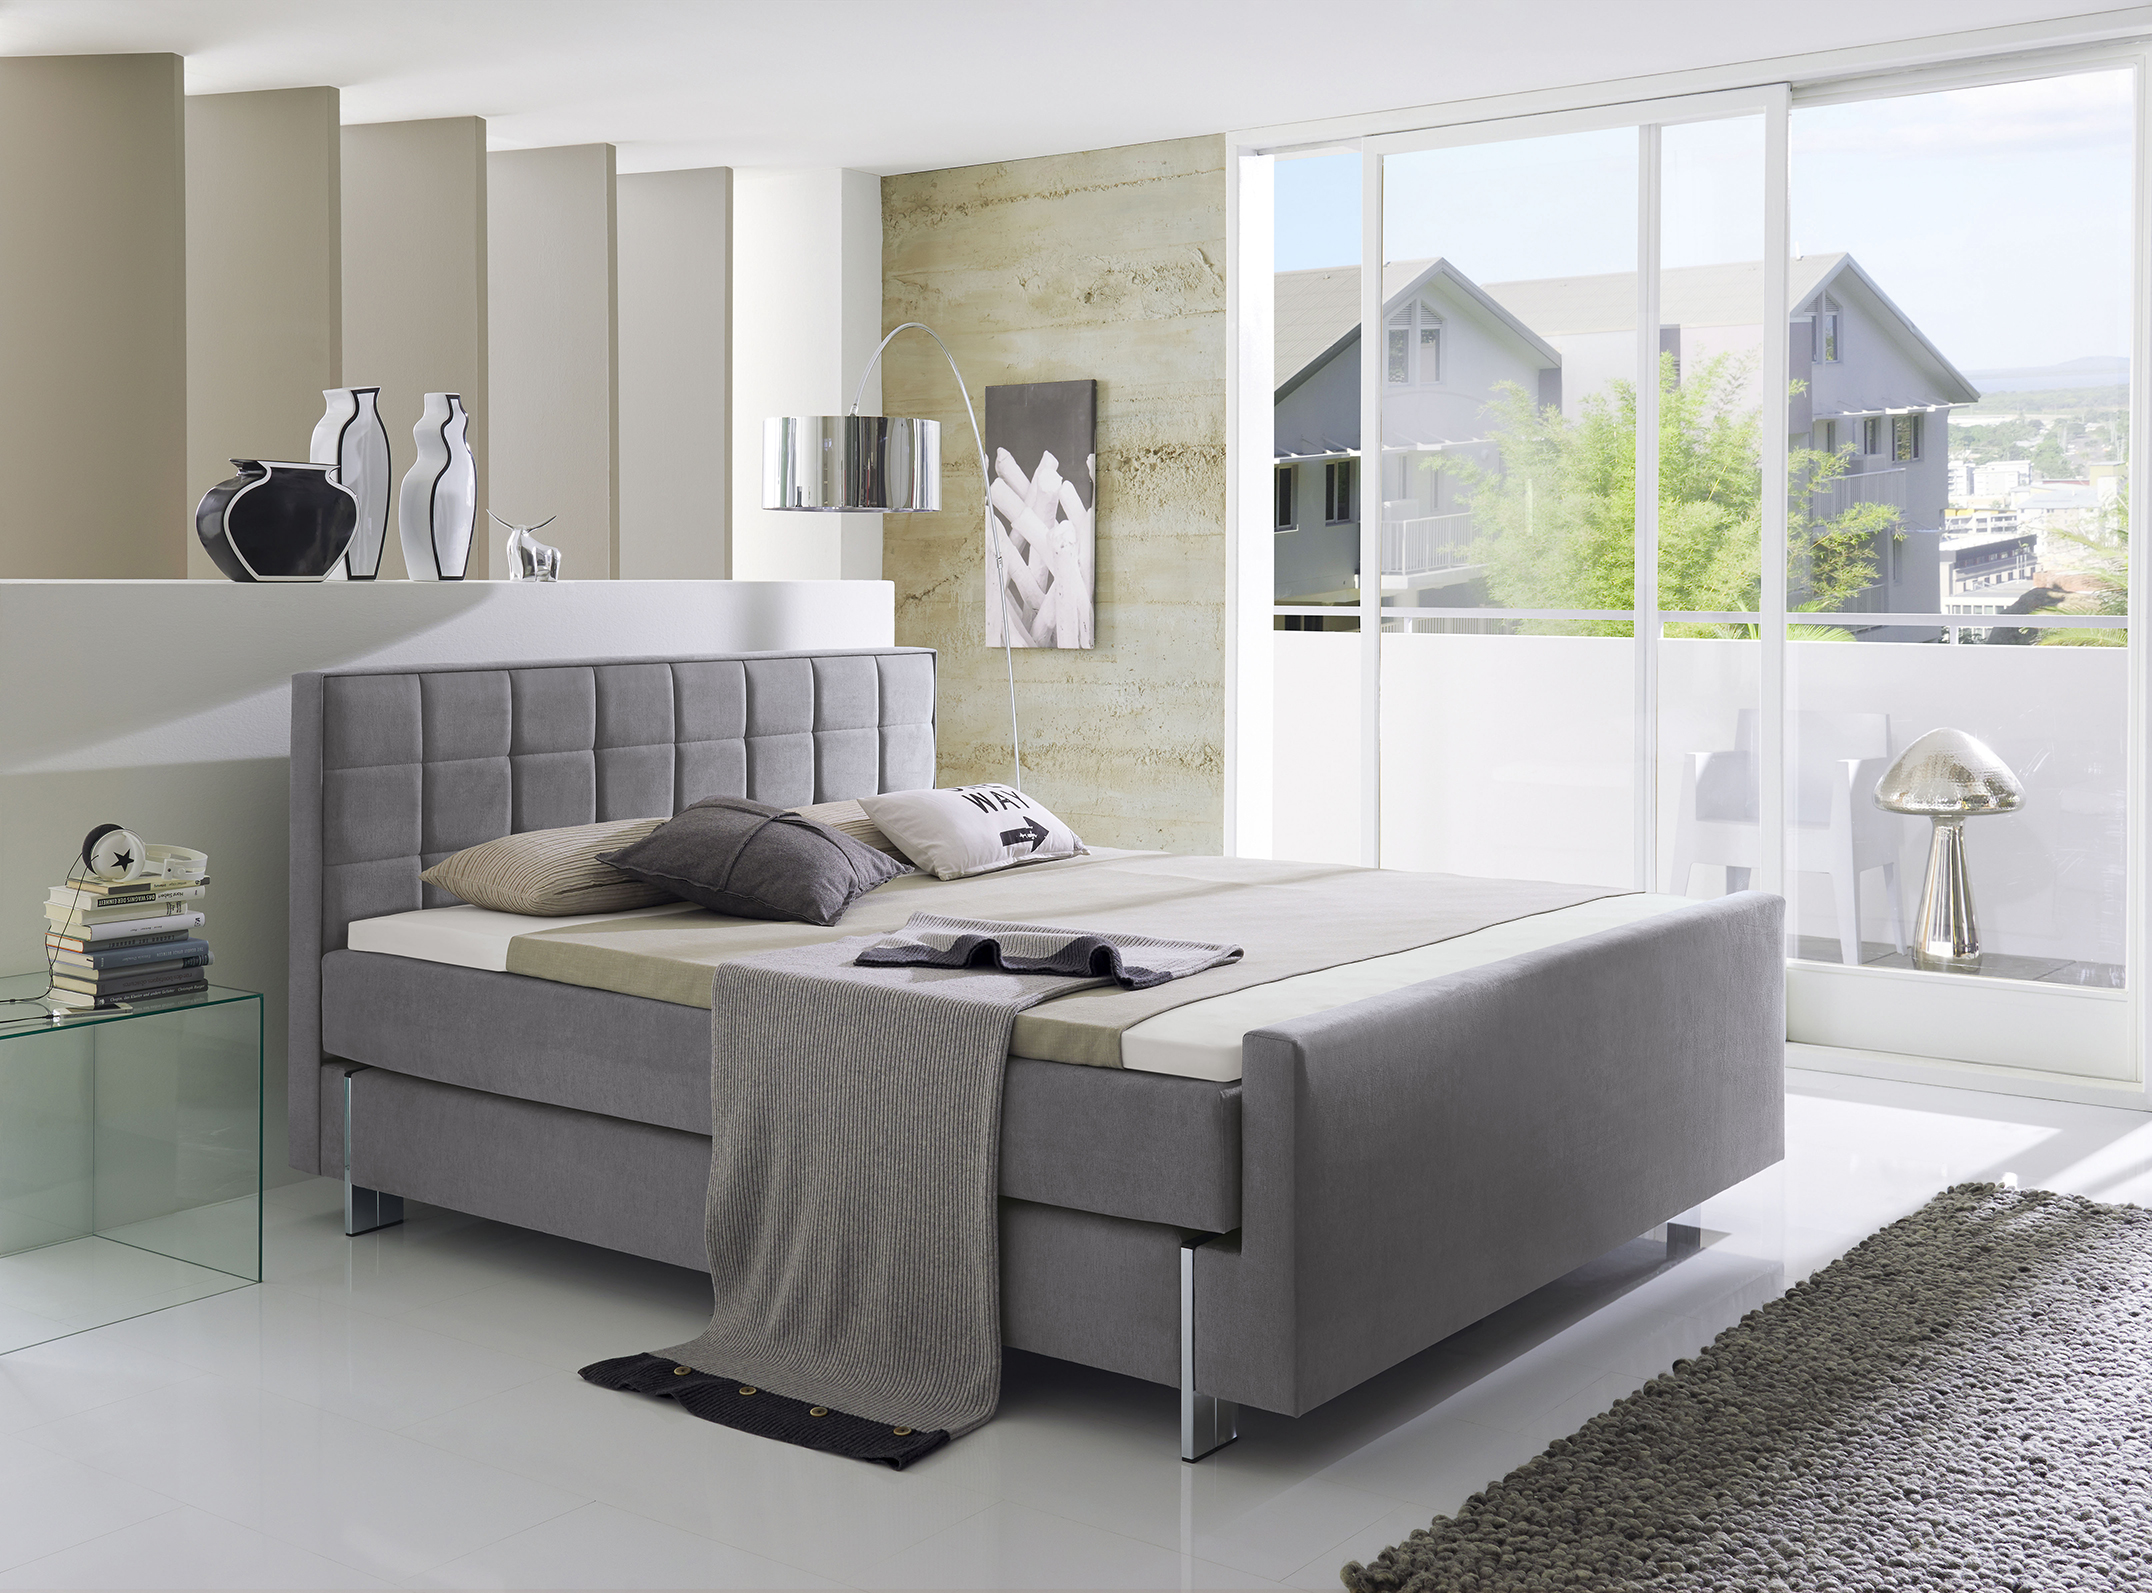 schlafen die grammlichs meine m bel mein zuhause. Black Bedroom Furniture Sets. Home Design Ideas